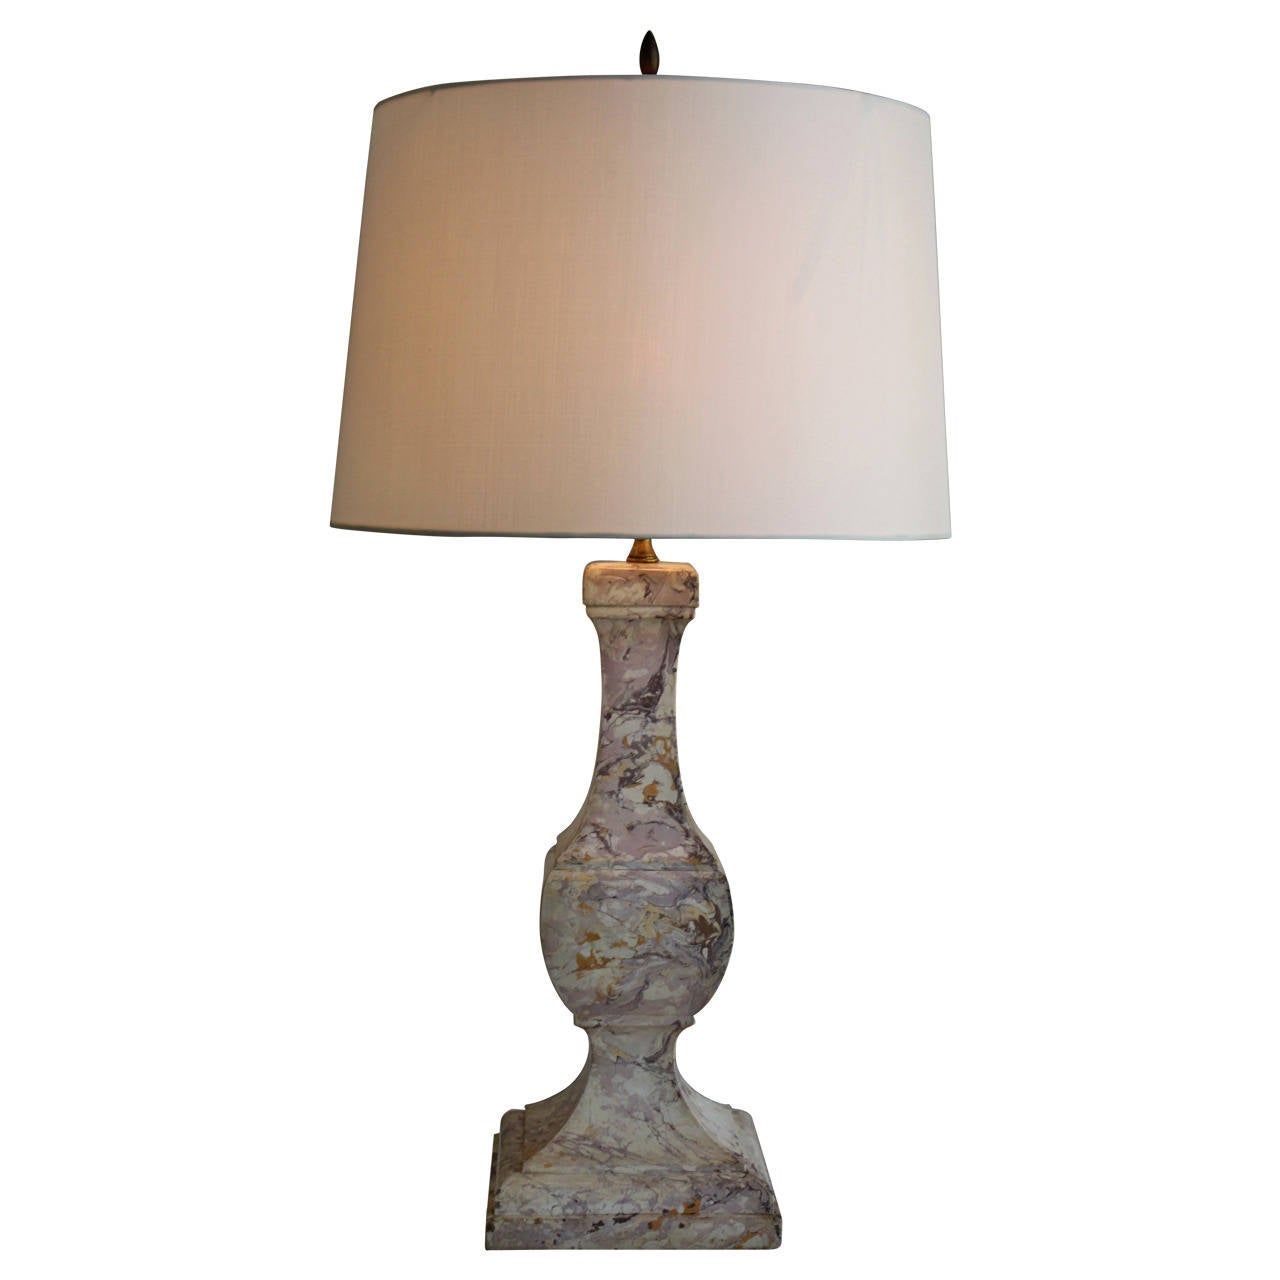 Exquisite and Rare English Marble Baluster Lamp, circa 1930